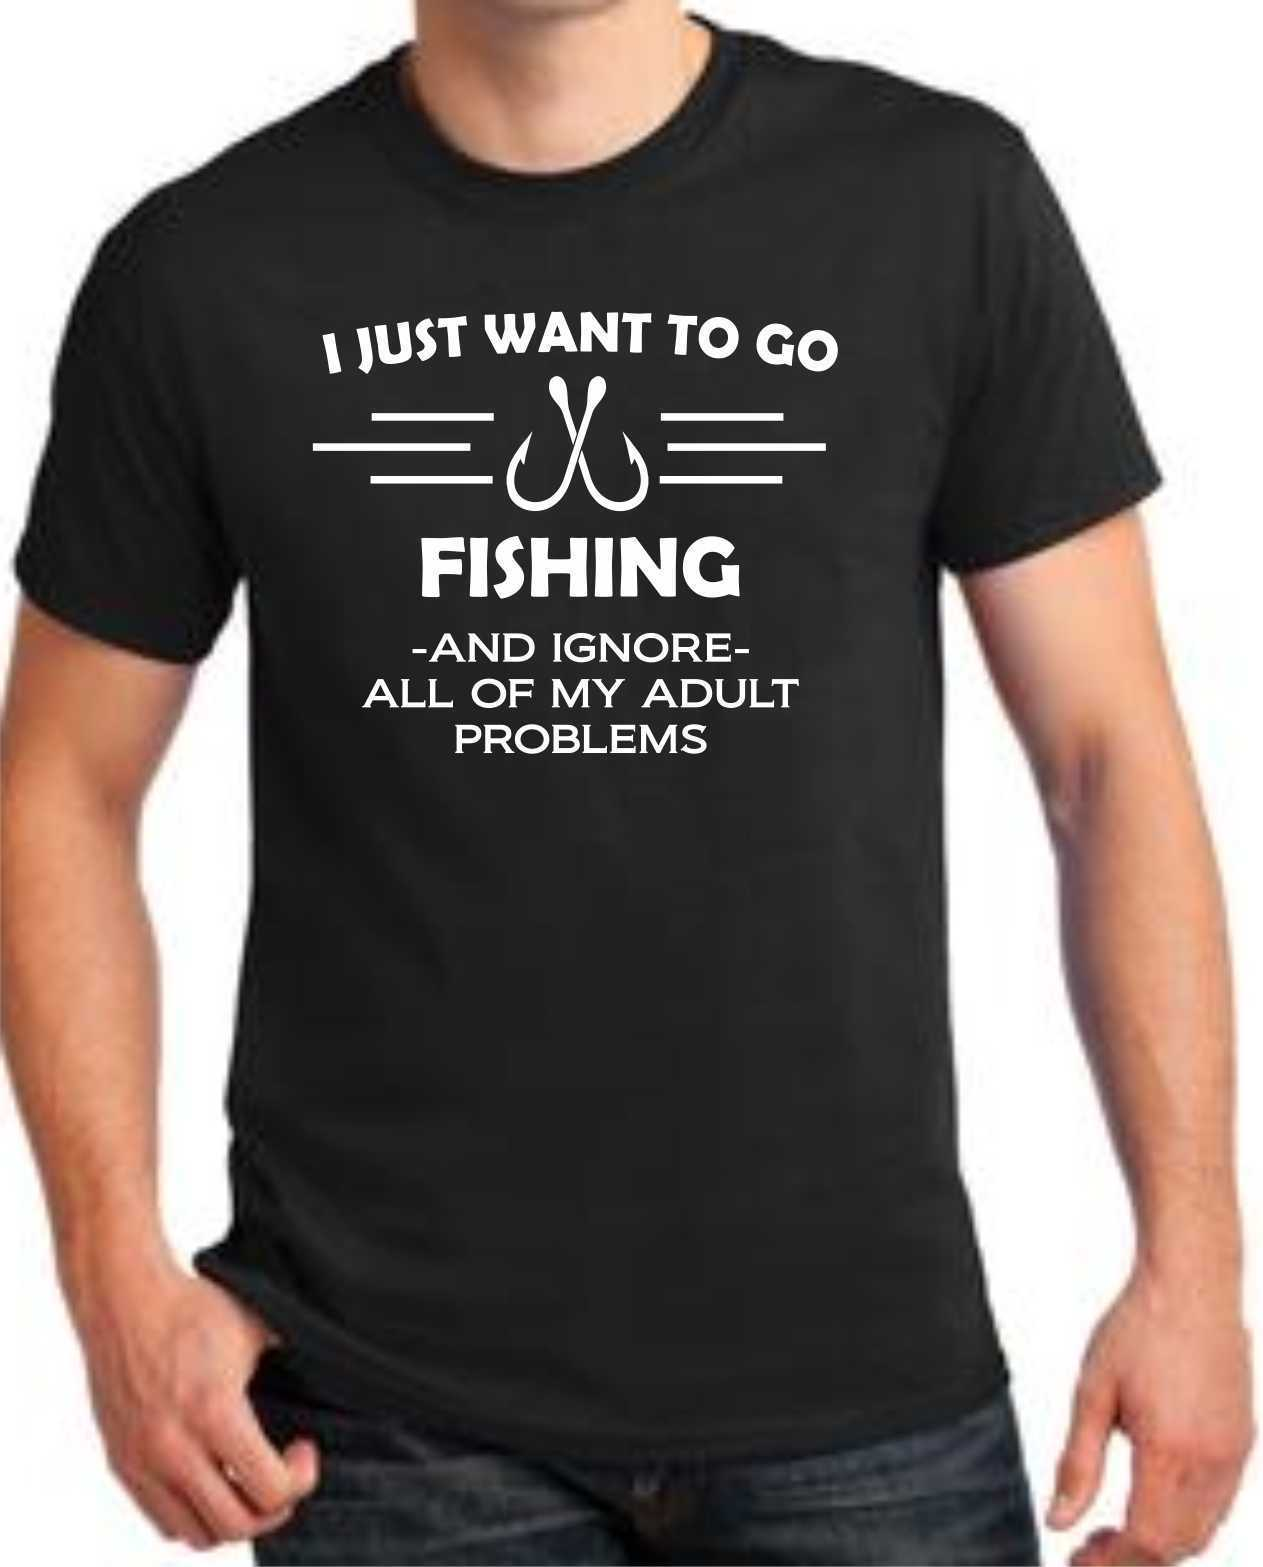 Plain T Shirts Comfort Soft O-Neck I Just Want To Go Fishinger Fathers Day Graphic Short-Sleeve Mens Shirt